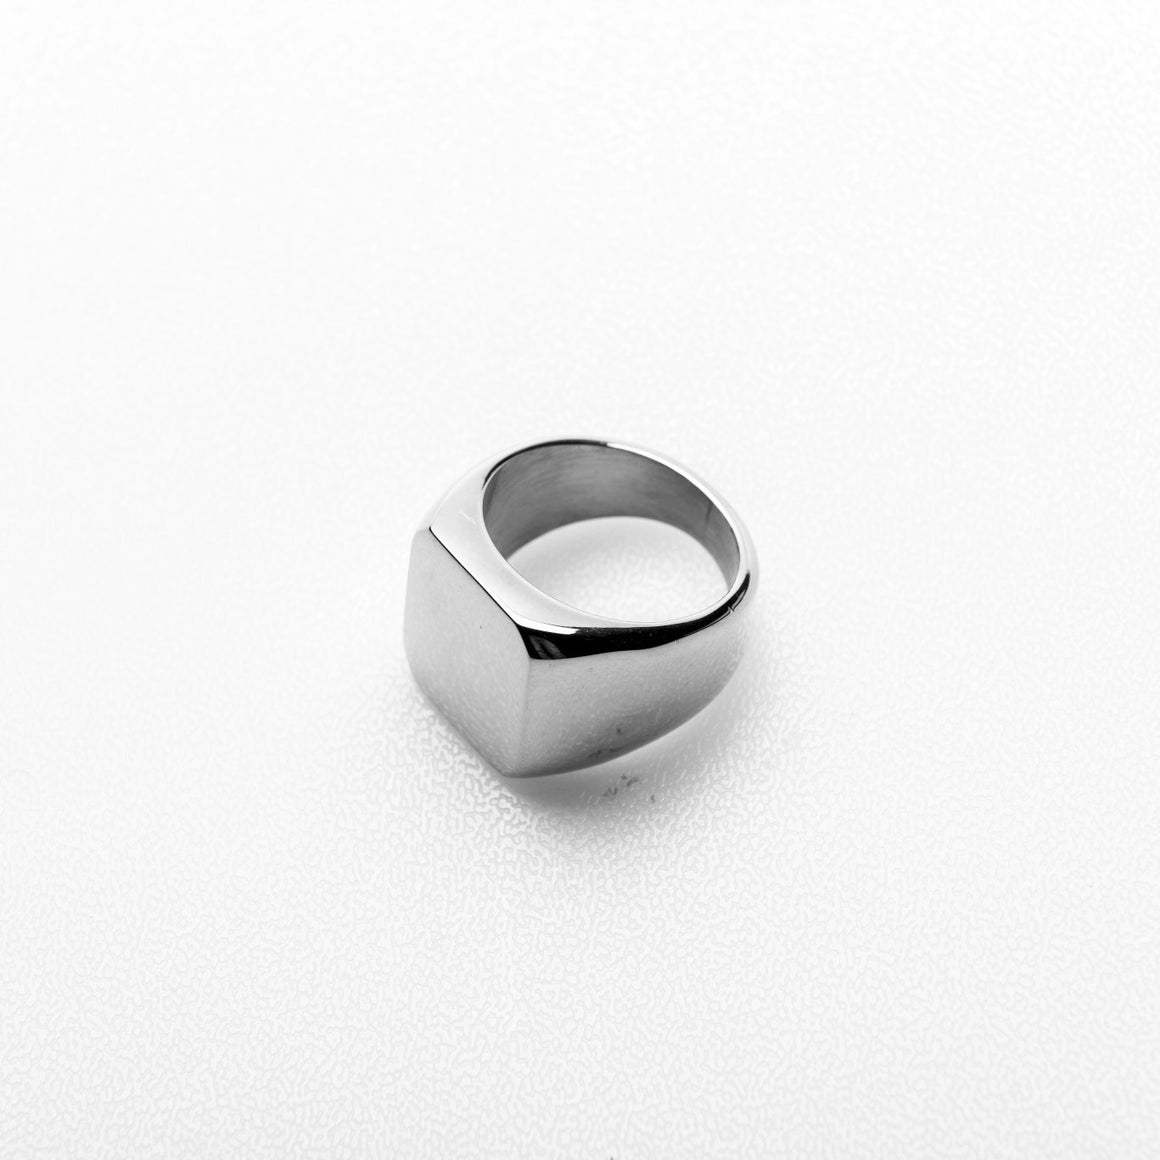 KEENA SQUARE SIGNET RING | SILVER - 54 Floral Streetwear Urban Clothing